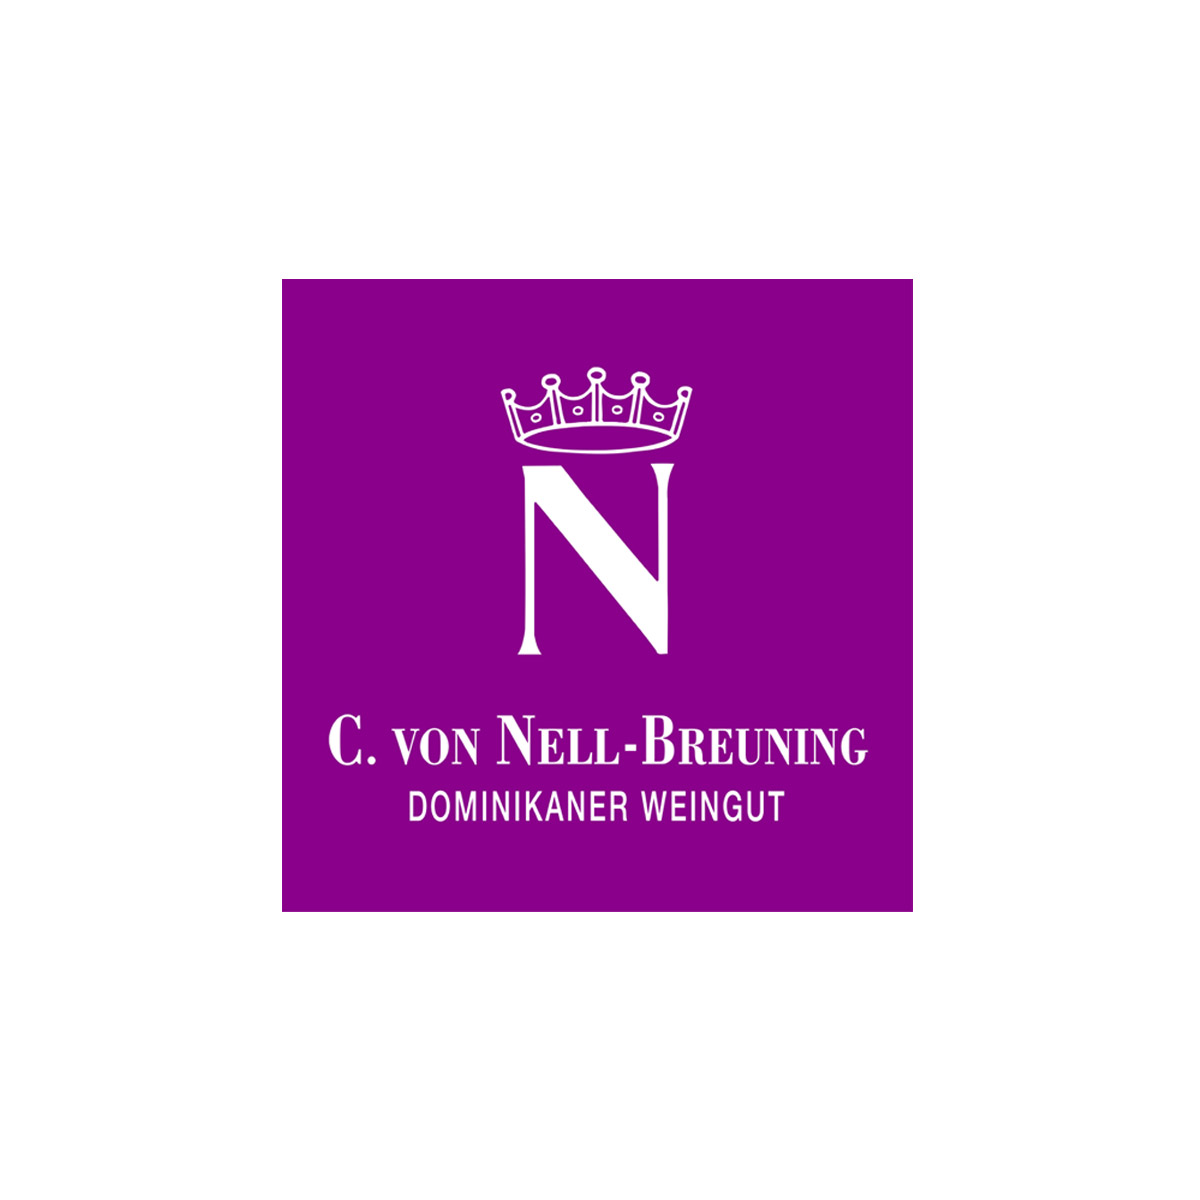 Thank you to our Luxembourg vernissage wine sponsor